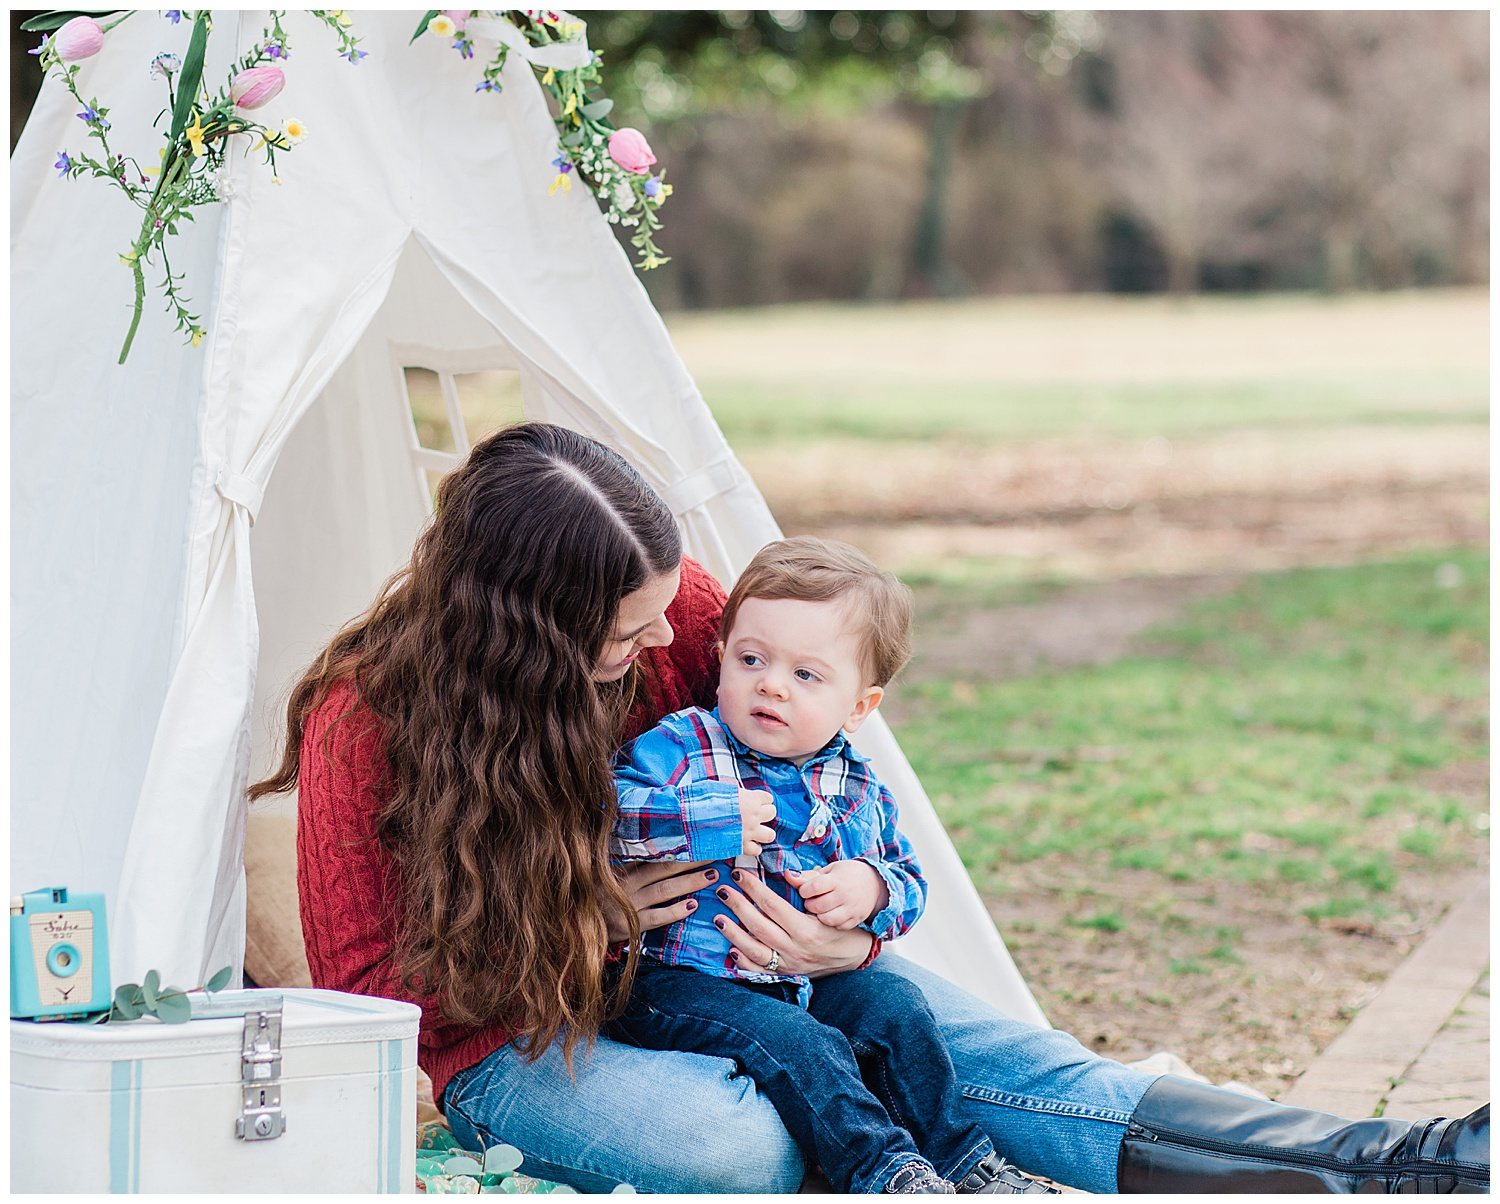 Richmond Family Photographer - Teepee at Byrd Park